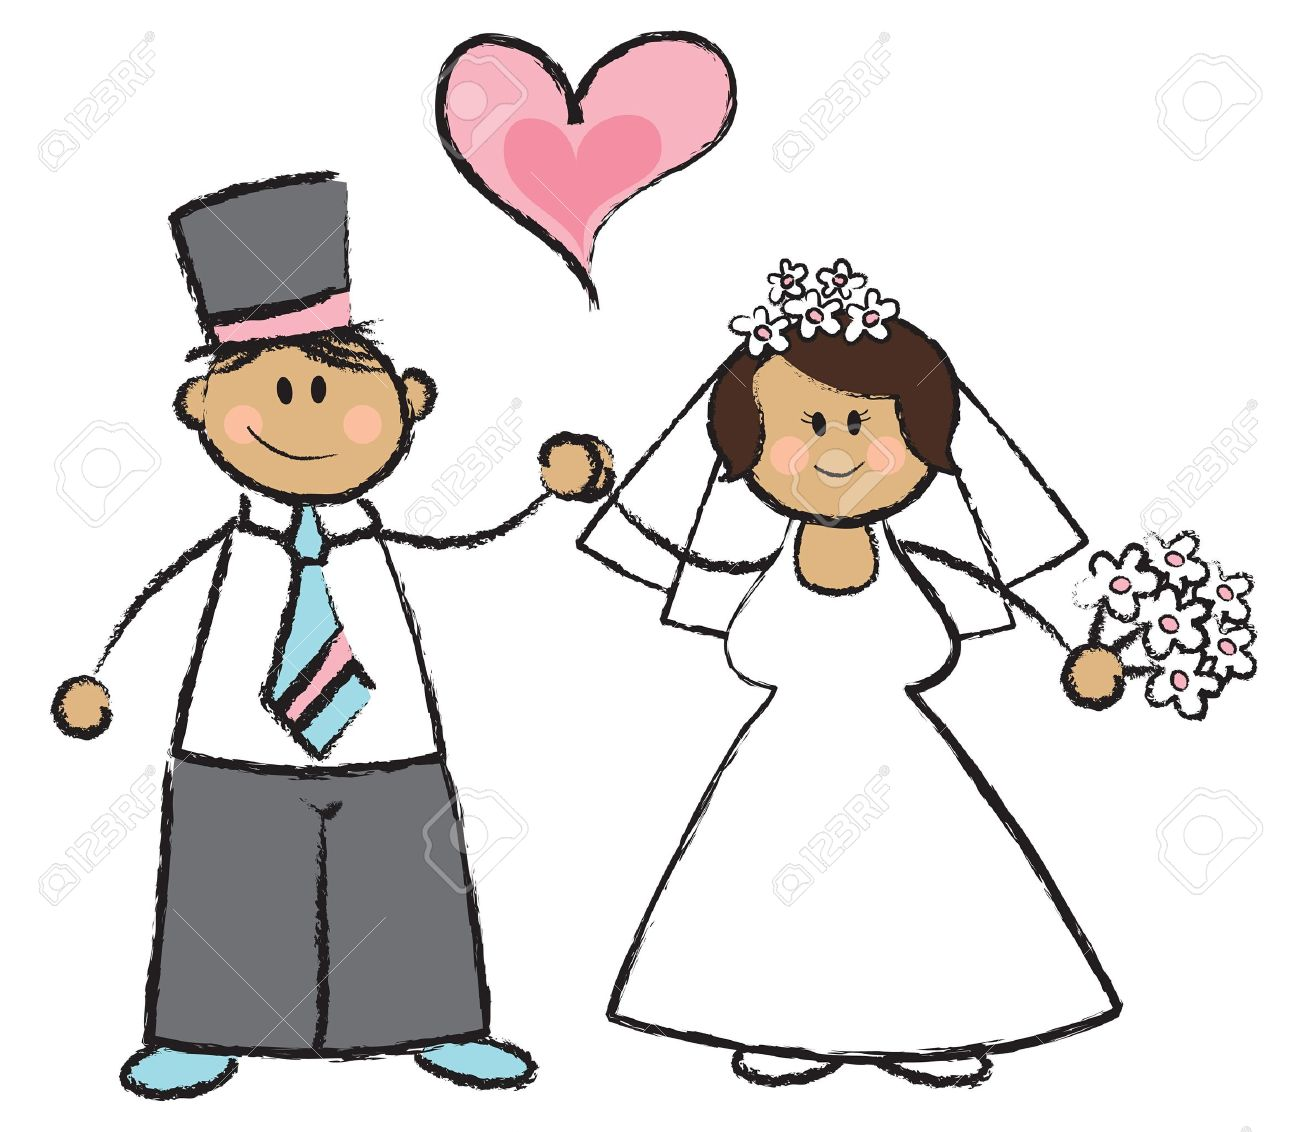 Just Married Cartoon Illustration Of A Wedding Couple